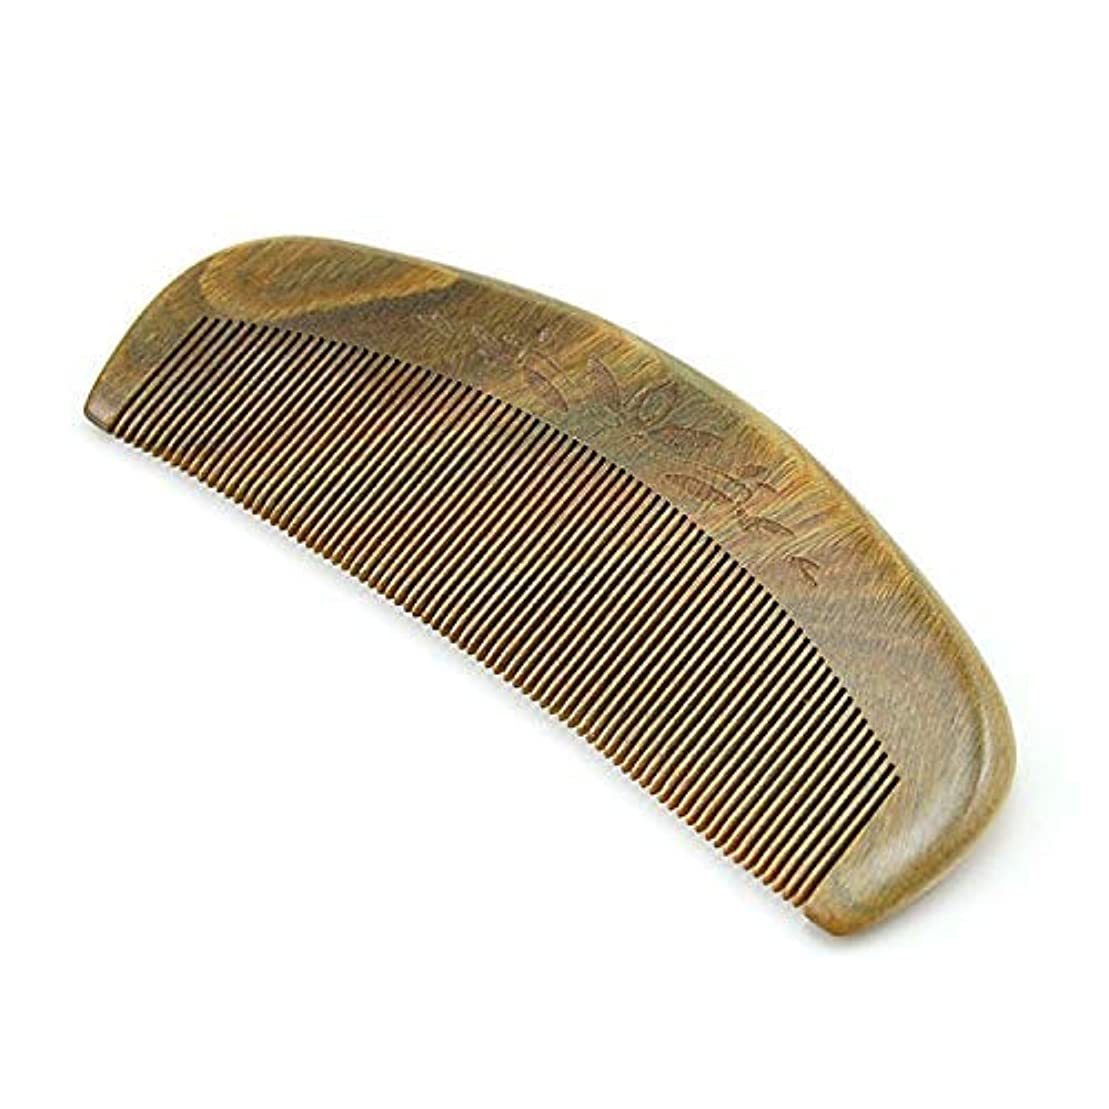 厚い振幅エゴマニアBrand New and Natural Green Sandalwood Fine Tooth Comb, Anti Static Pocket Wooden Comb [並行輸入品]